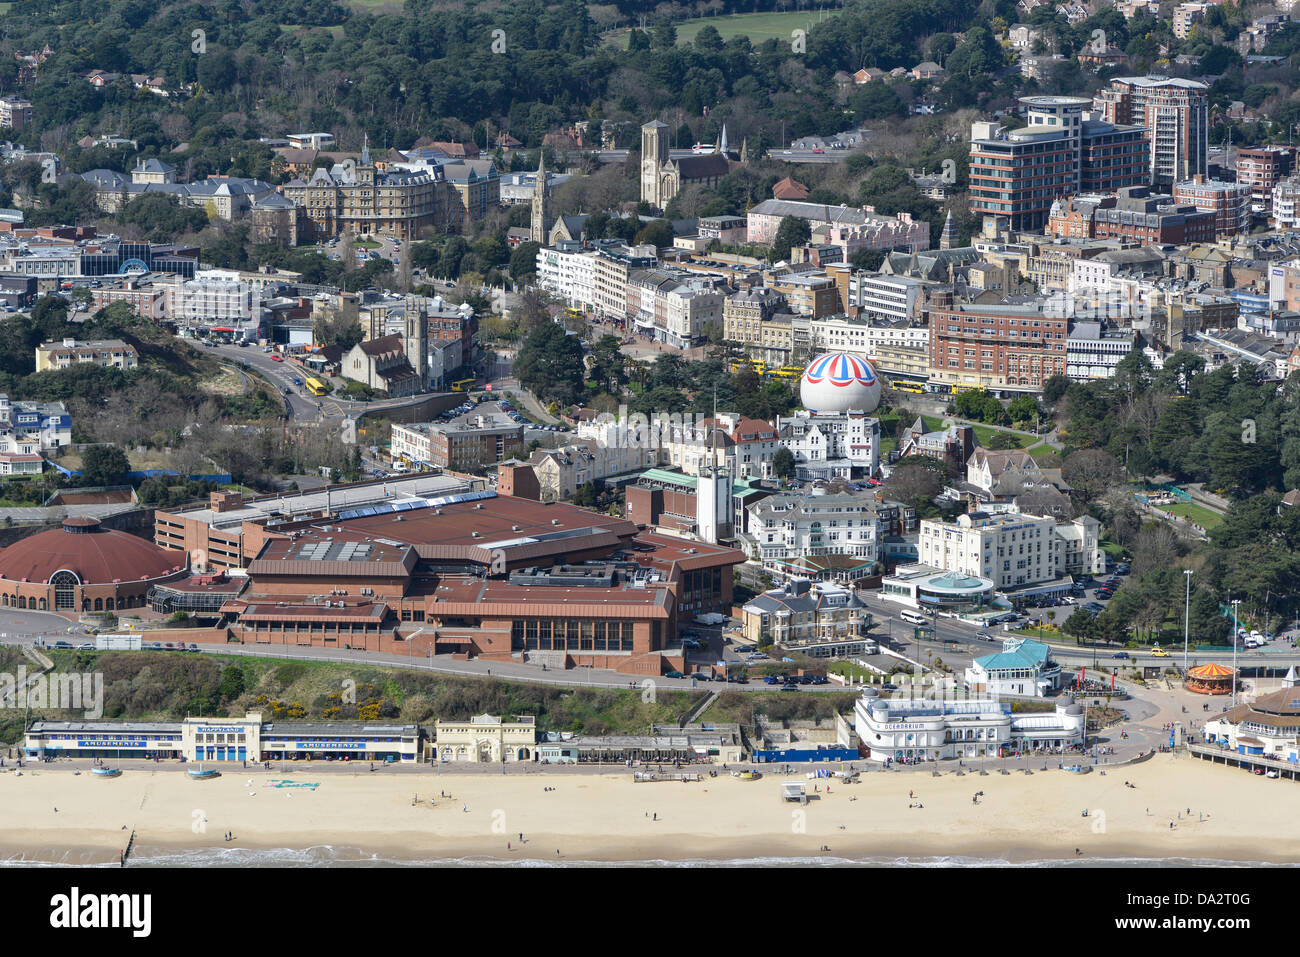 Aerial photograph of Bournemouth Sea front - Stock Image